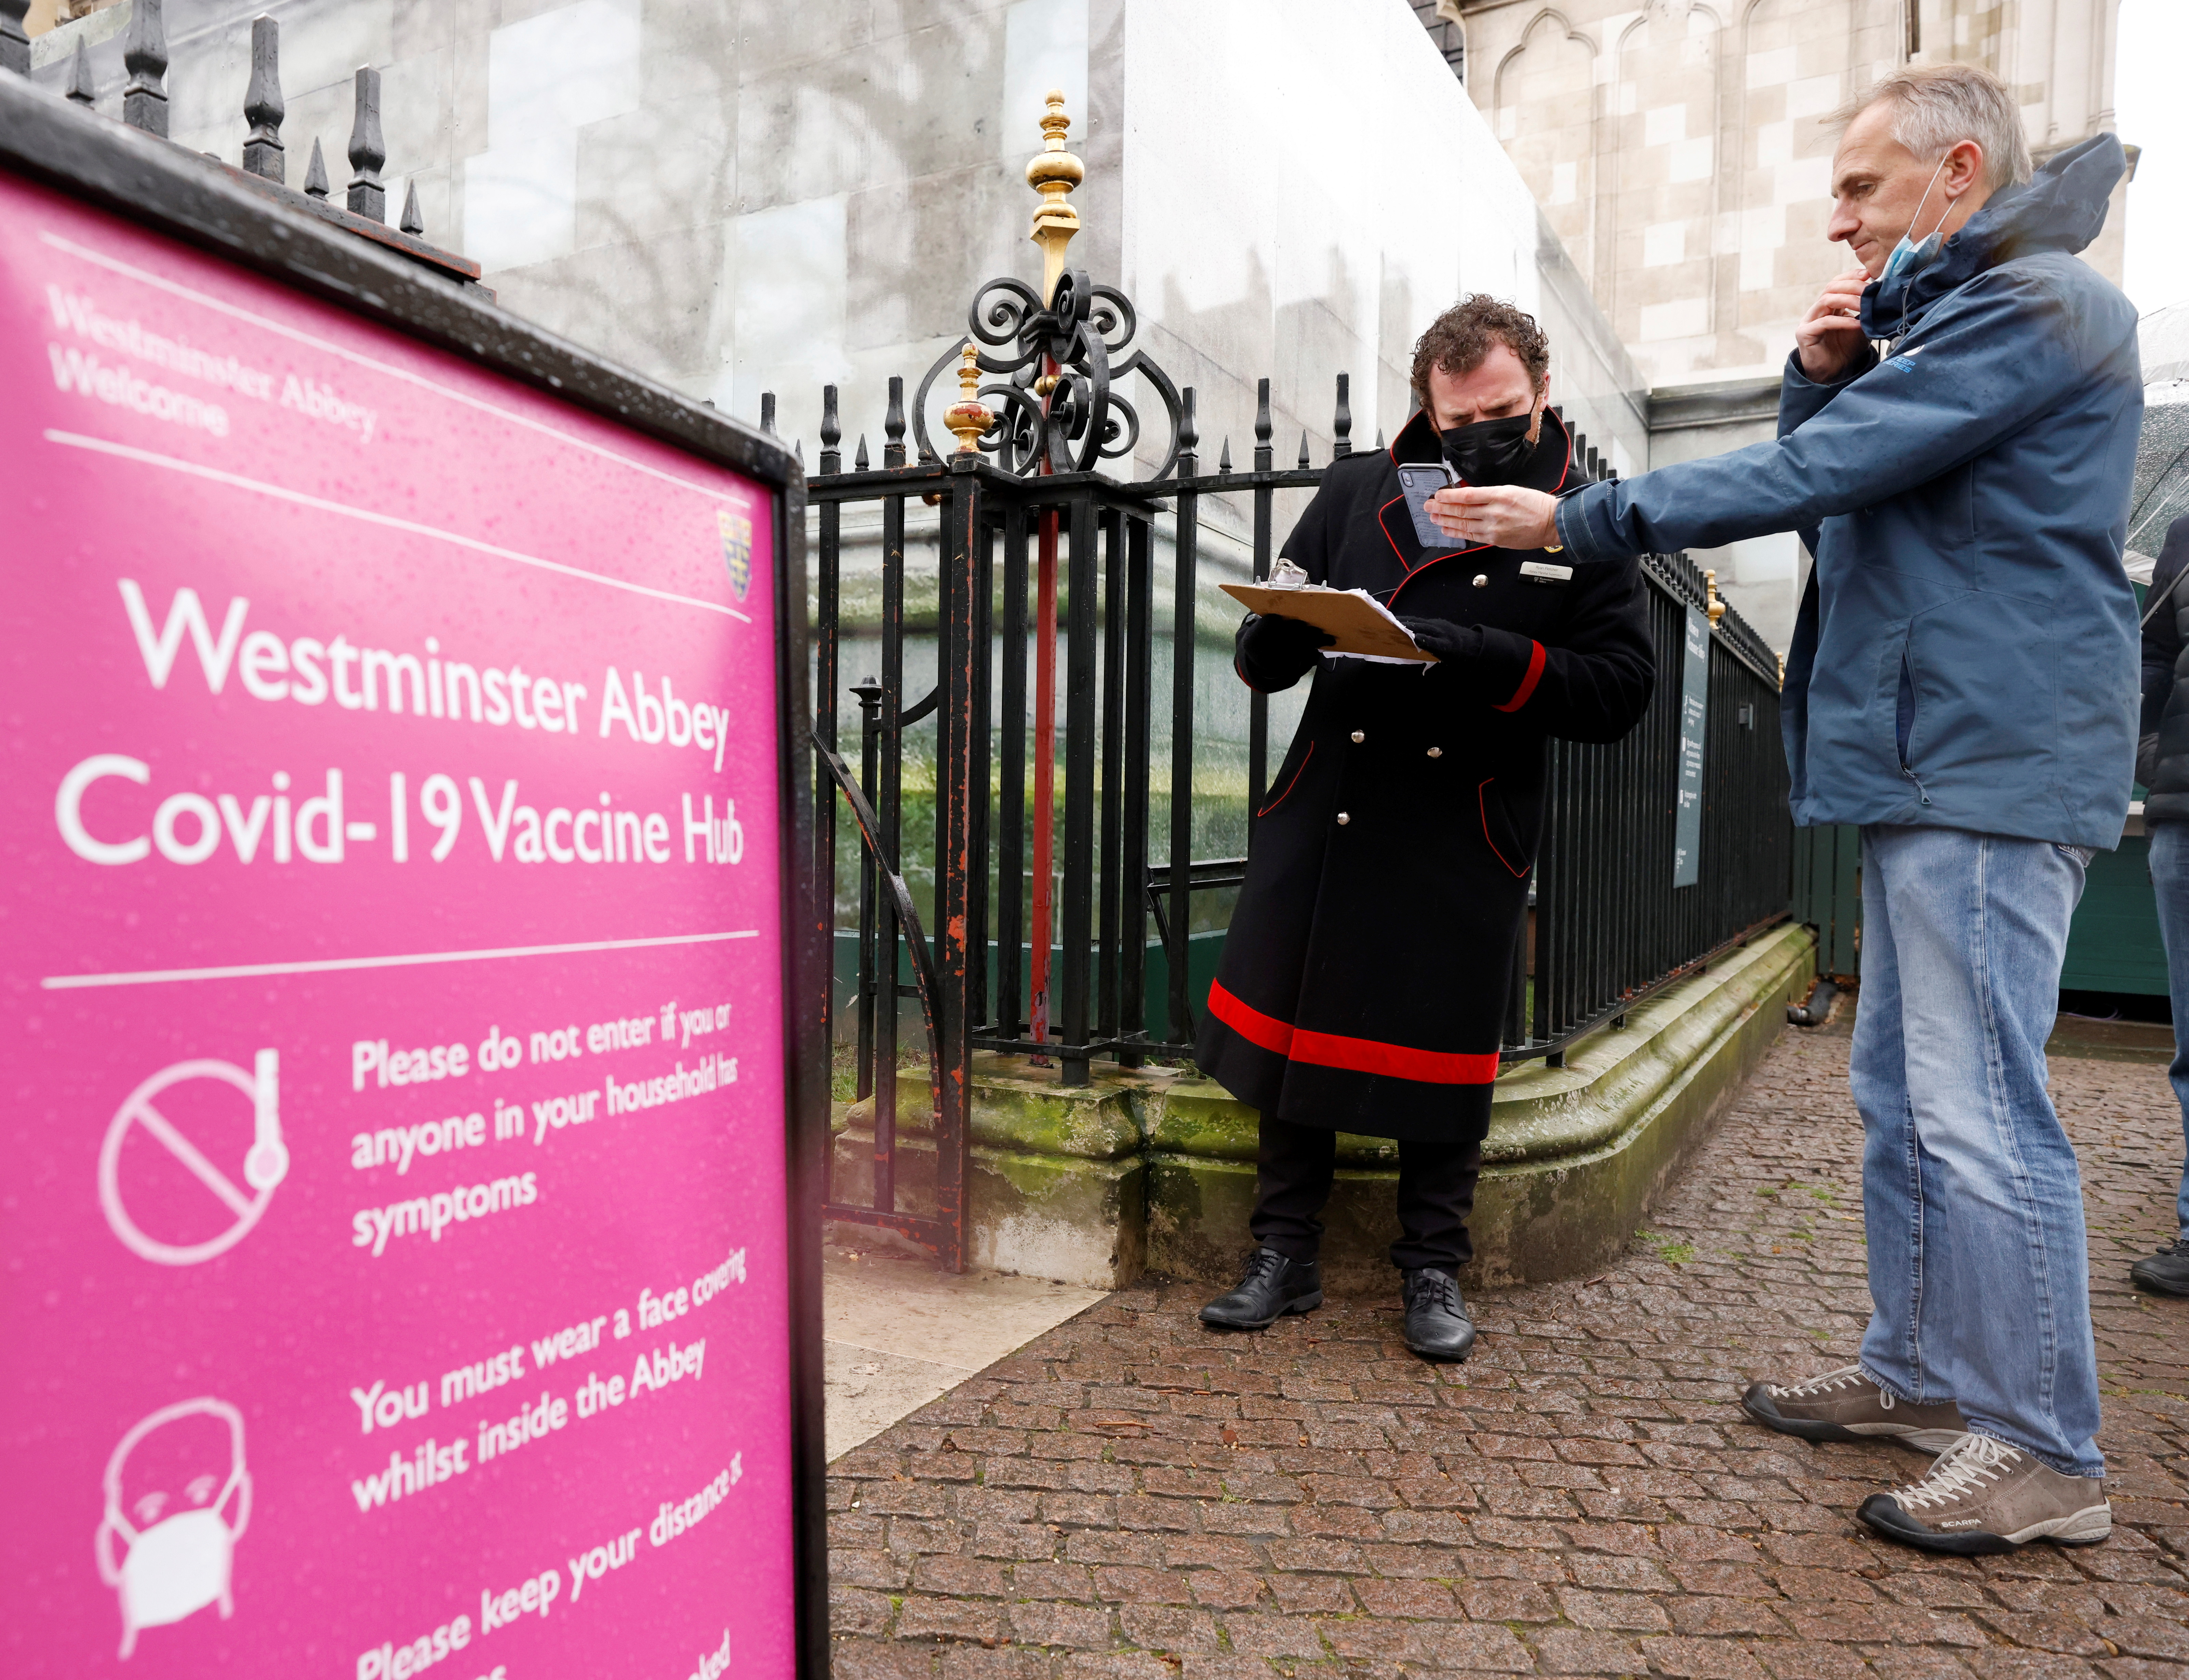 Patients are greeted by Abbey staff outside a vaccination centre at Westminster Abbey, amid the outbreak of coronavirus disease (COVID-19), in London, Britain, March 10, 2021. REUTERS/John Sibley